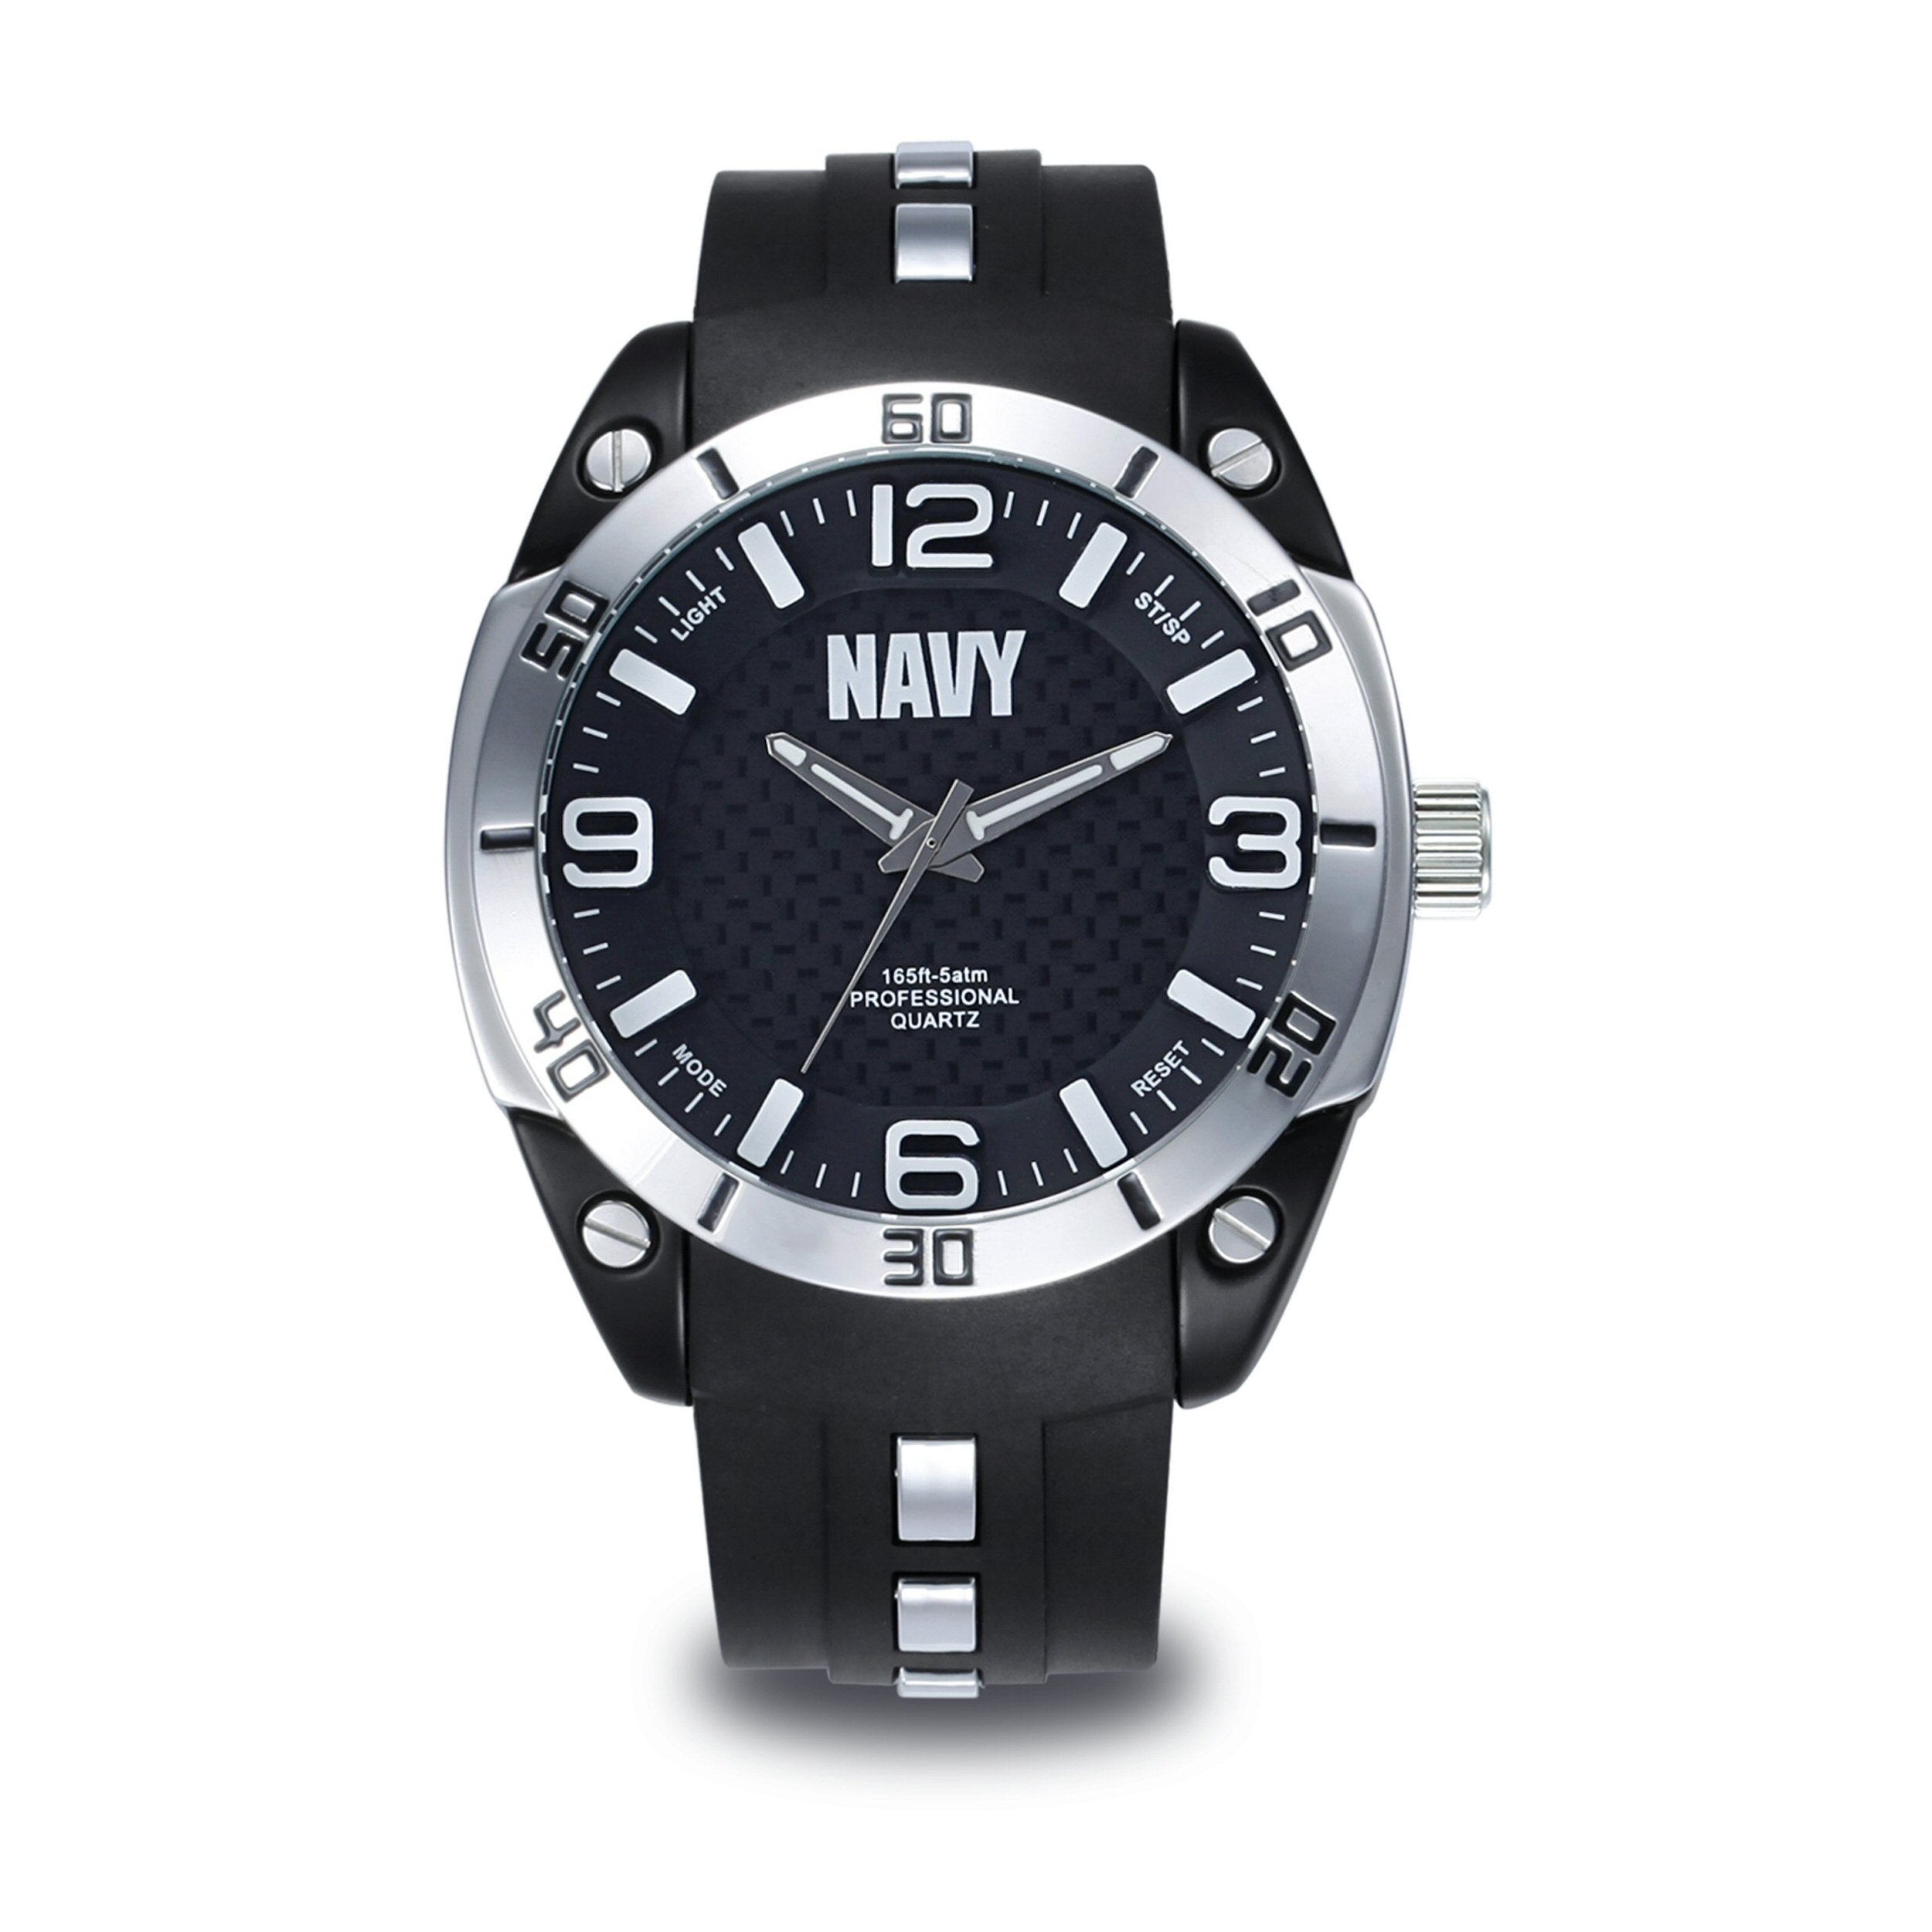 Men's U.S. Navy 37400010 C36 Analog Display Quartz Watch